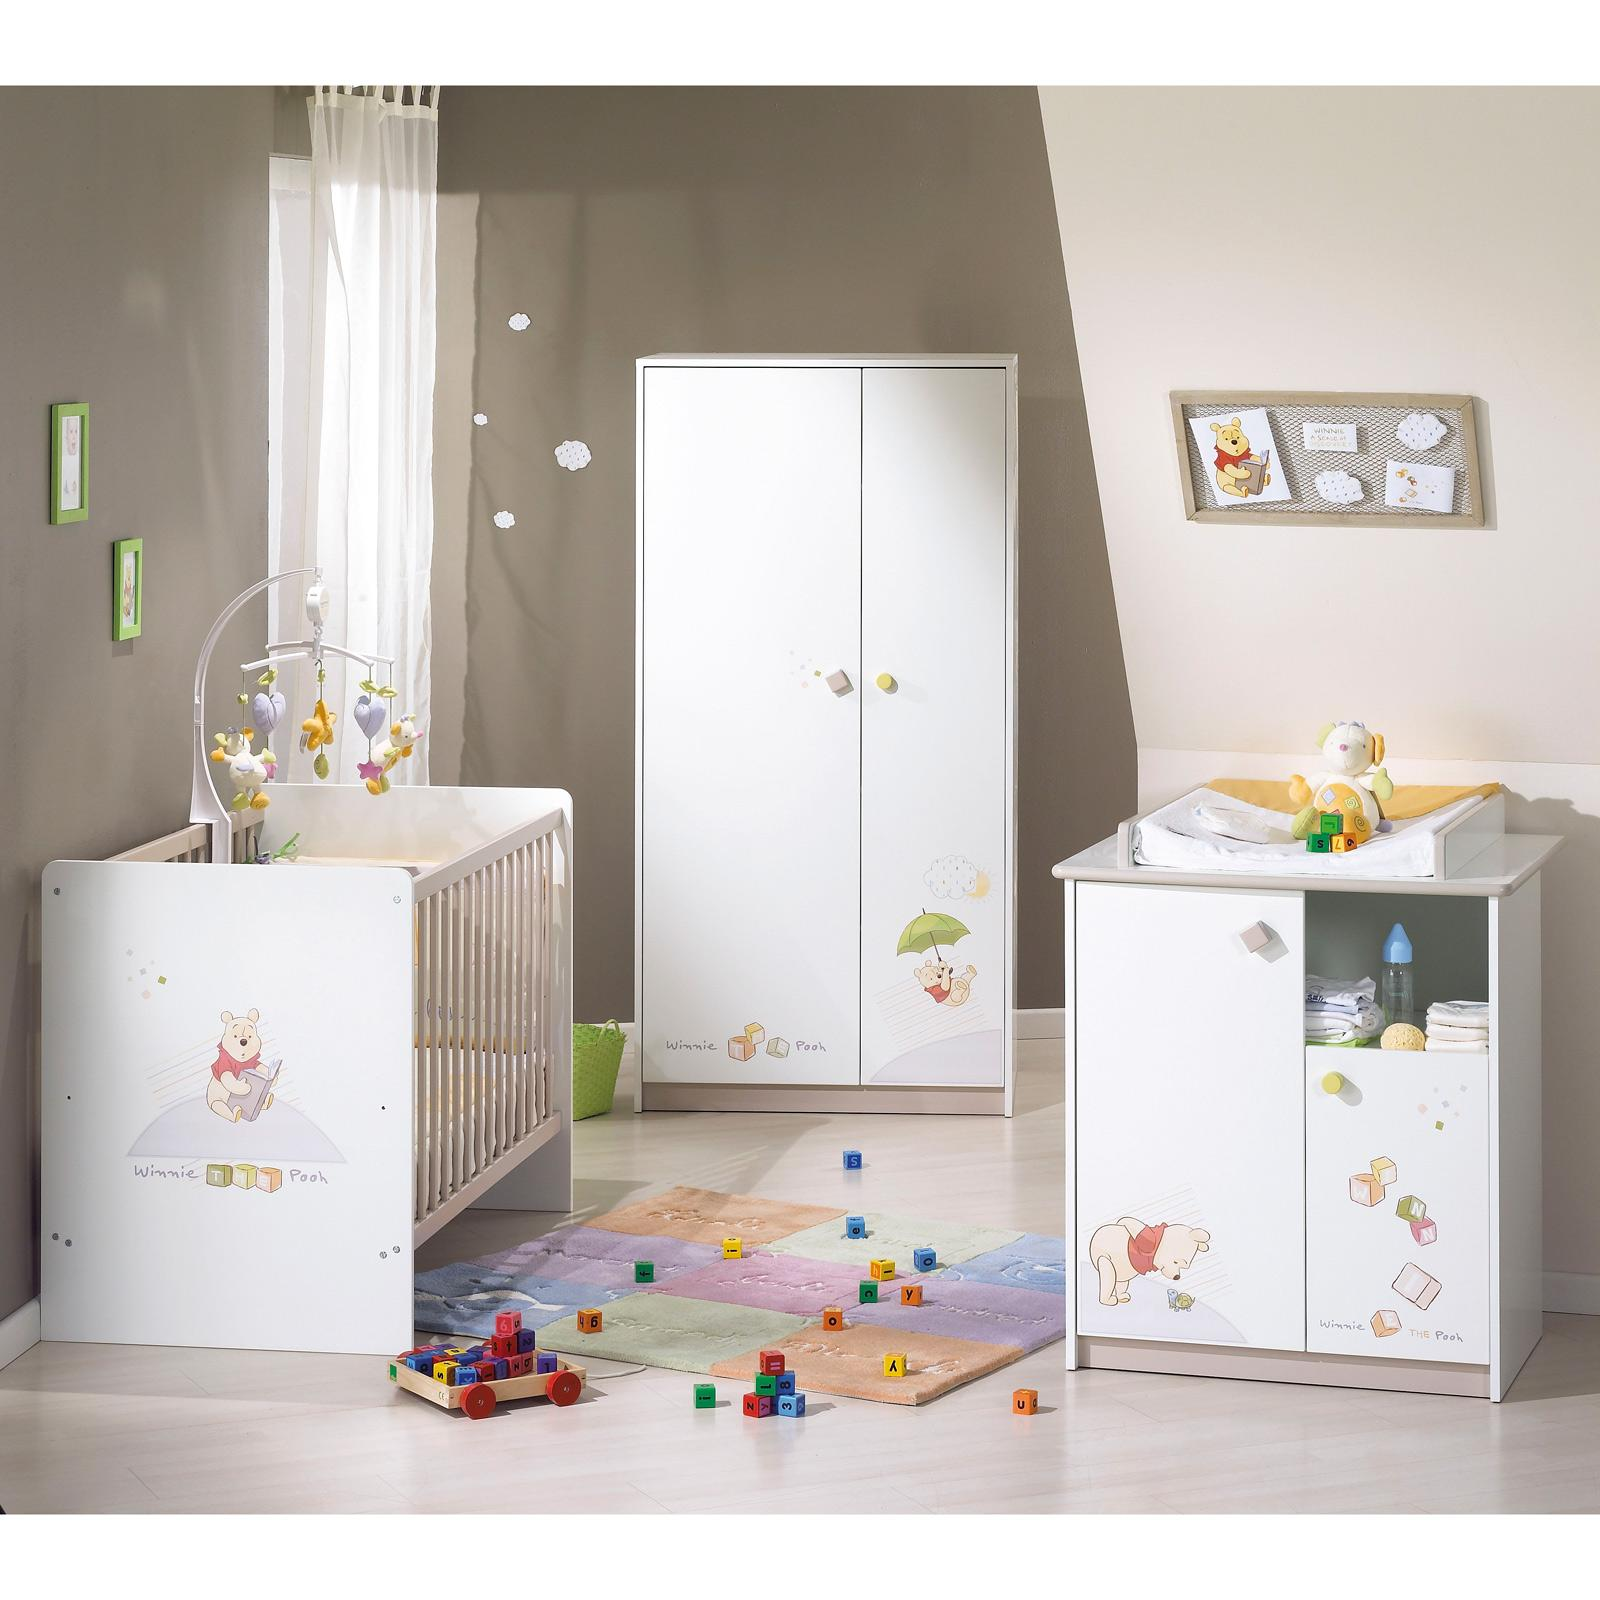 Decoration de chambre bebe winnie l ourson for Deco chambre bebe mansardee 2